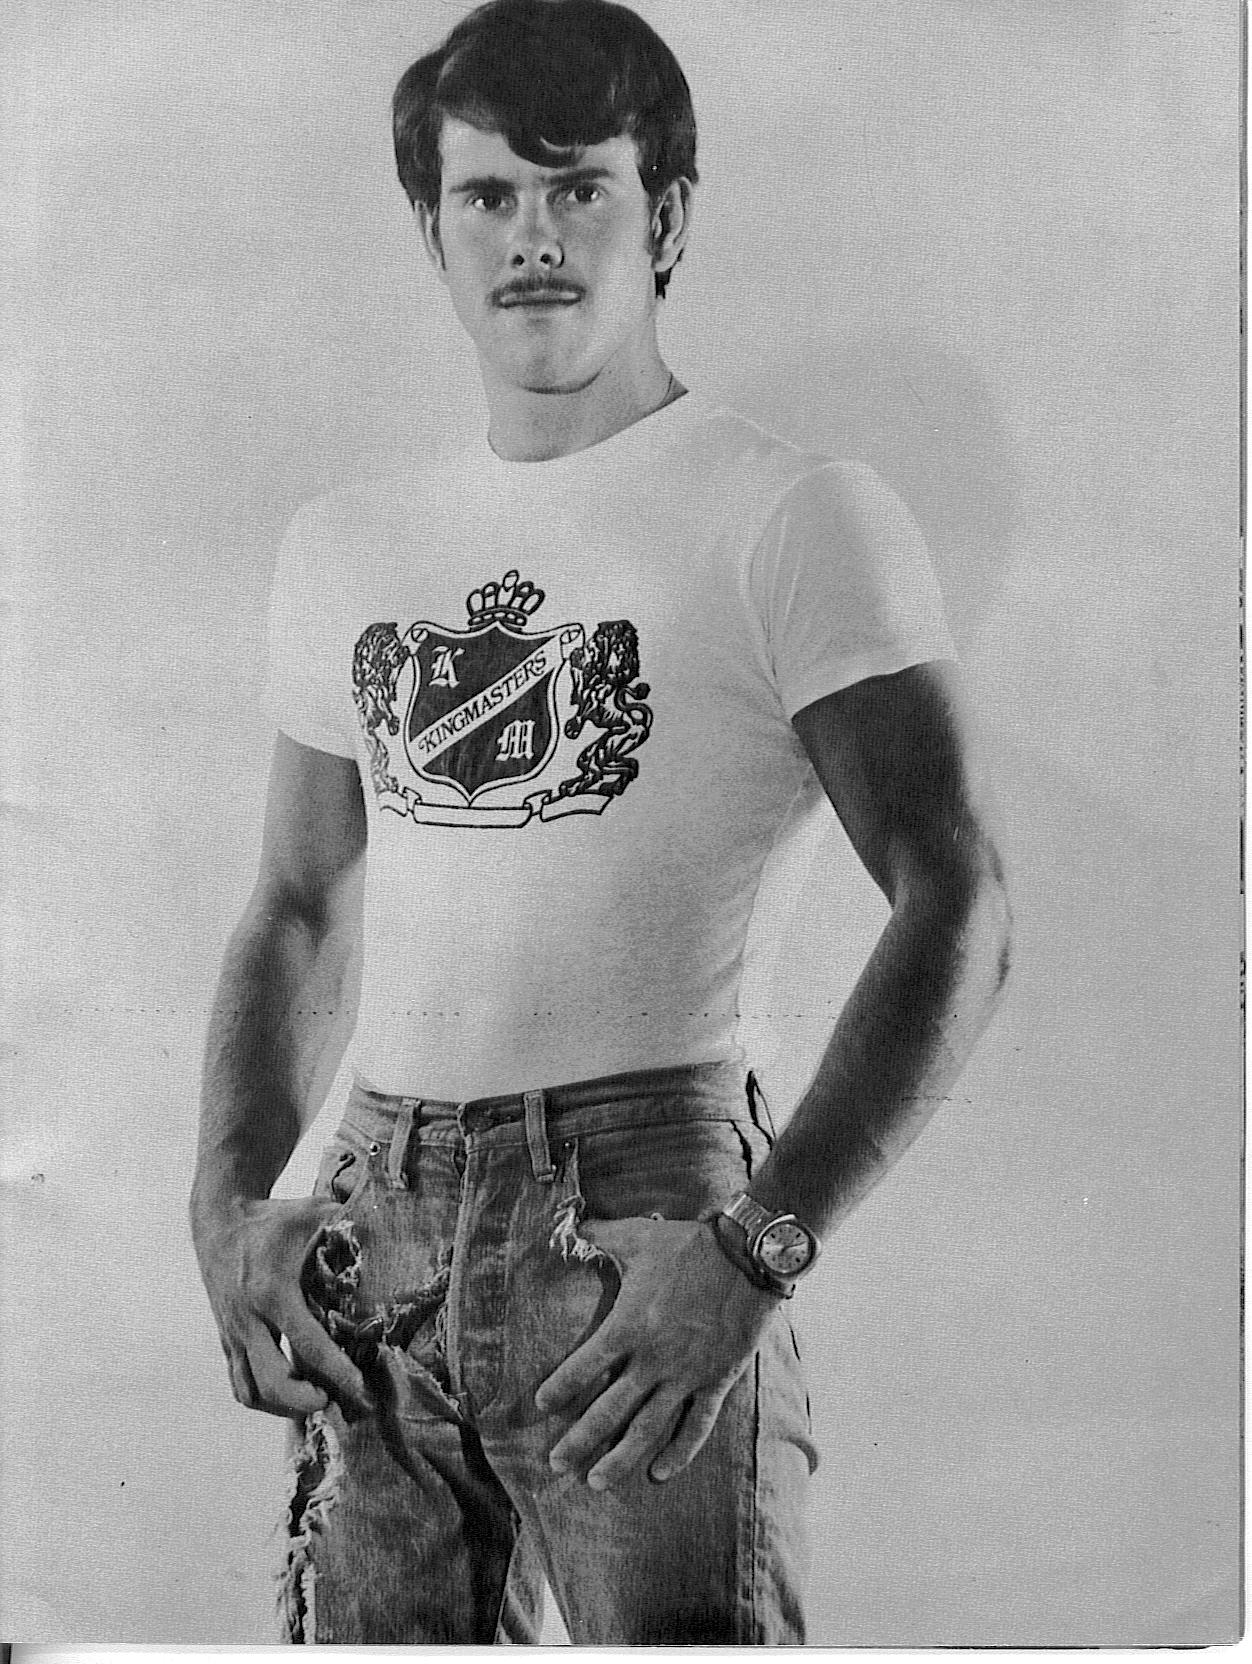 Vintage Beefcake The Levis Guys